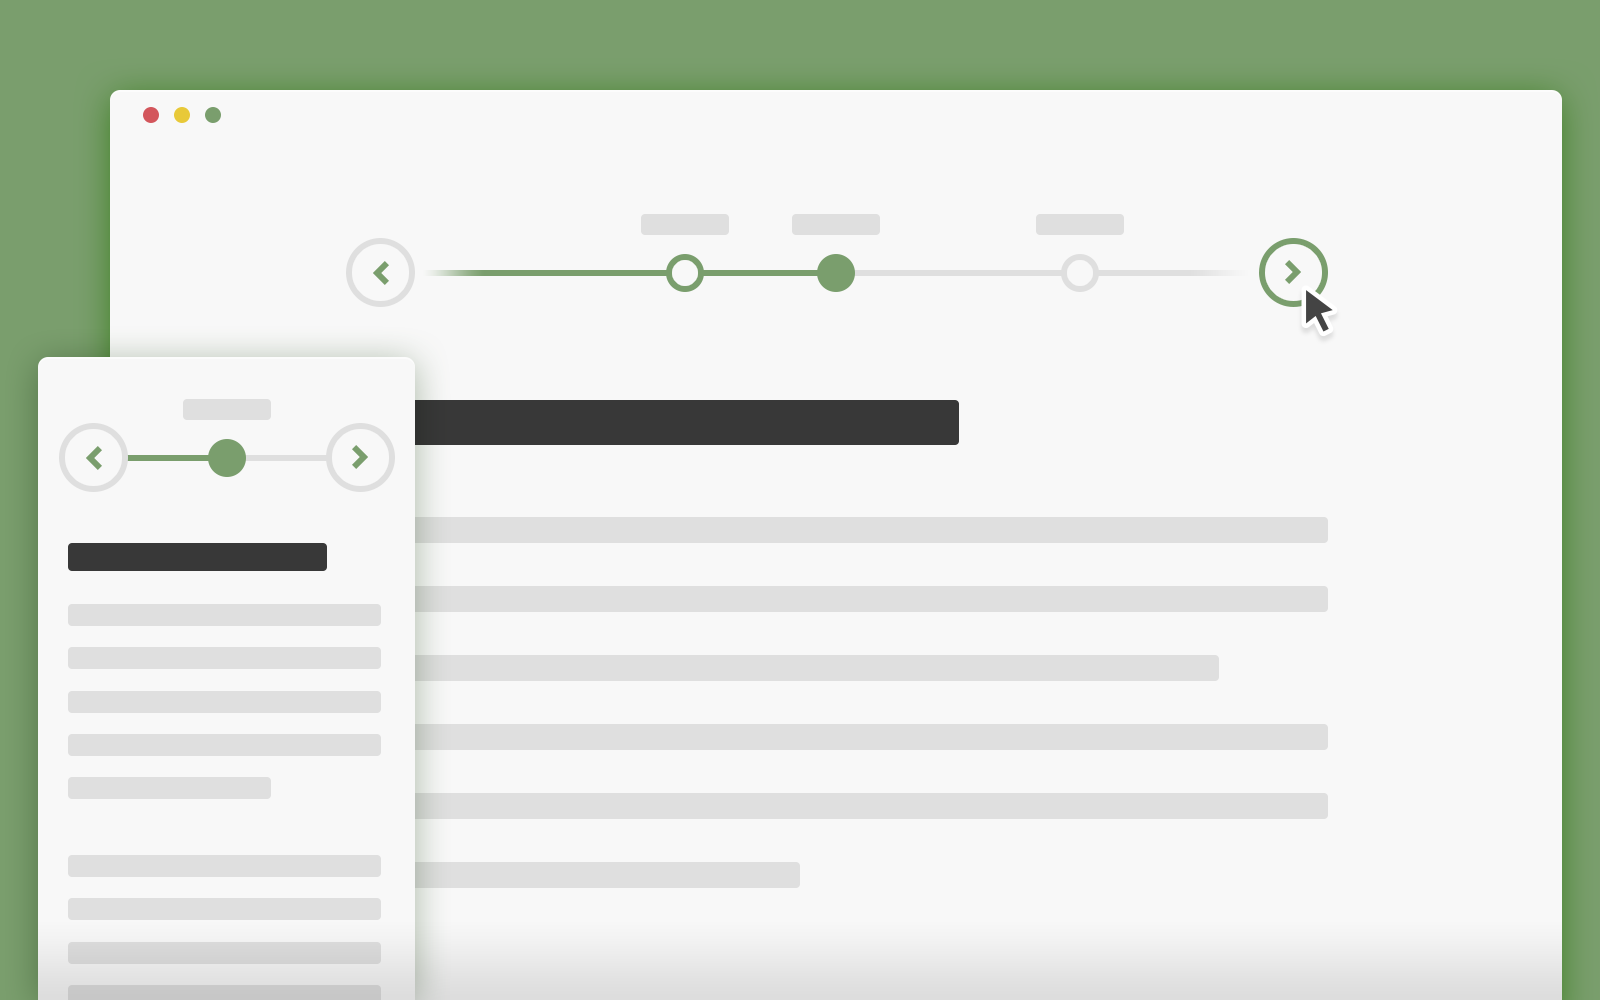 Horizontal Timeline Coding Animation Code CSS CSS3 HTML HTML5 Javascript JQuery Navigation Resource Responsive Snippets